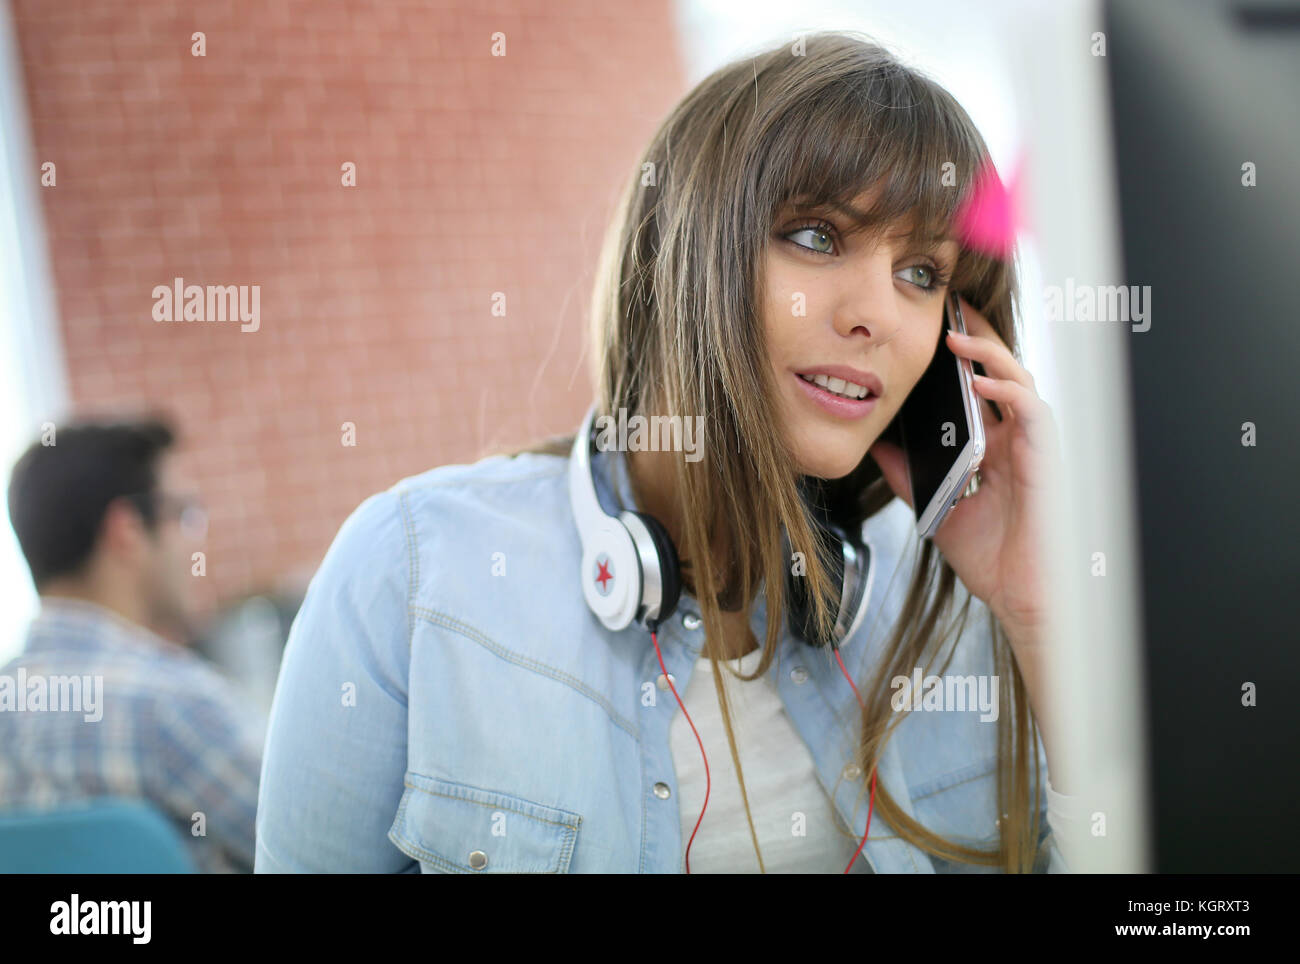 Young woman talking on smartphone in front of desktop - Stock Image